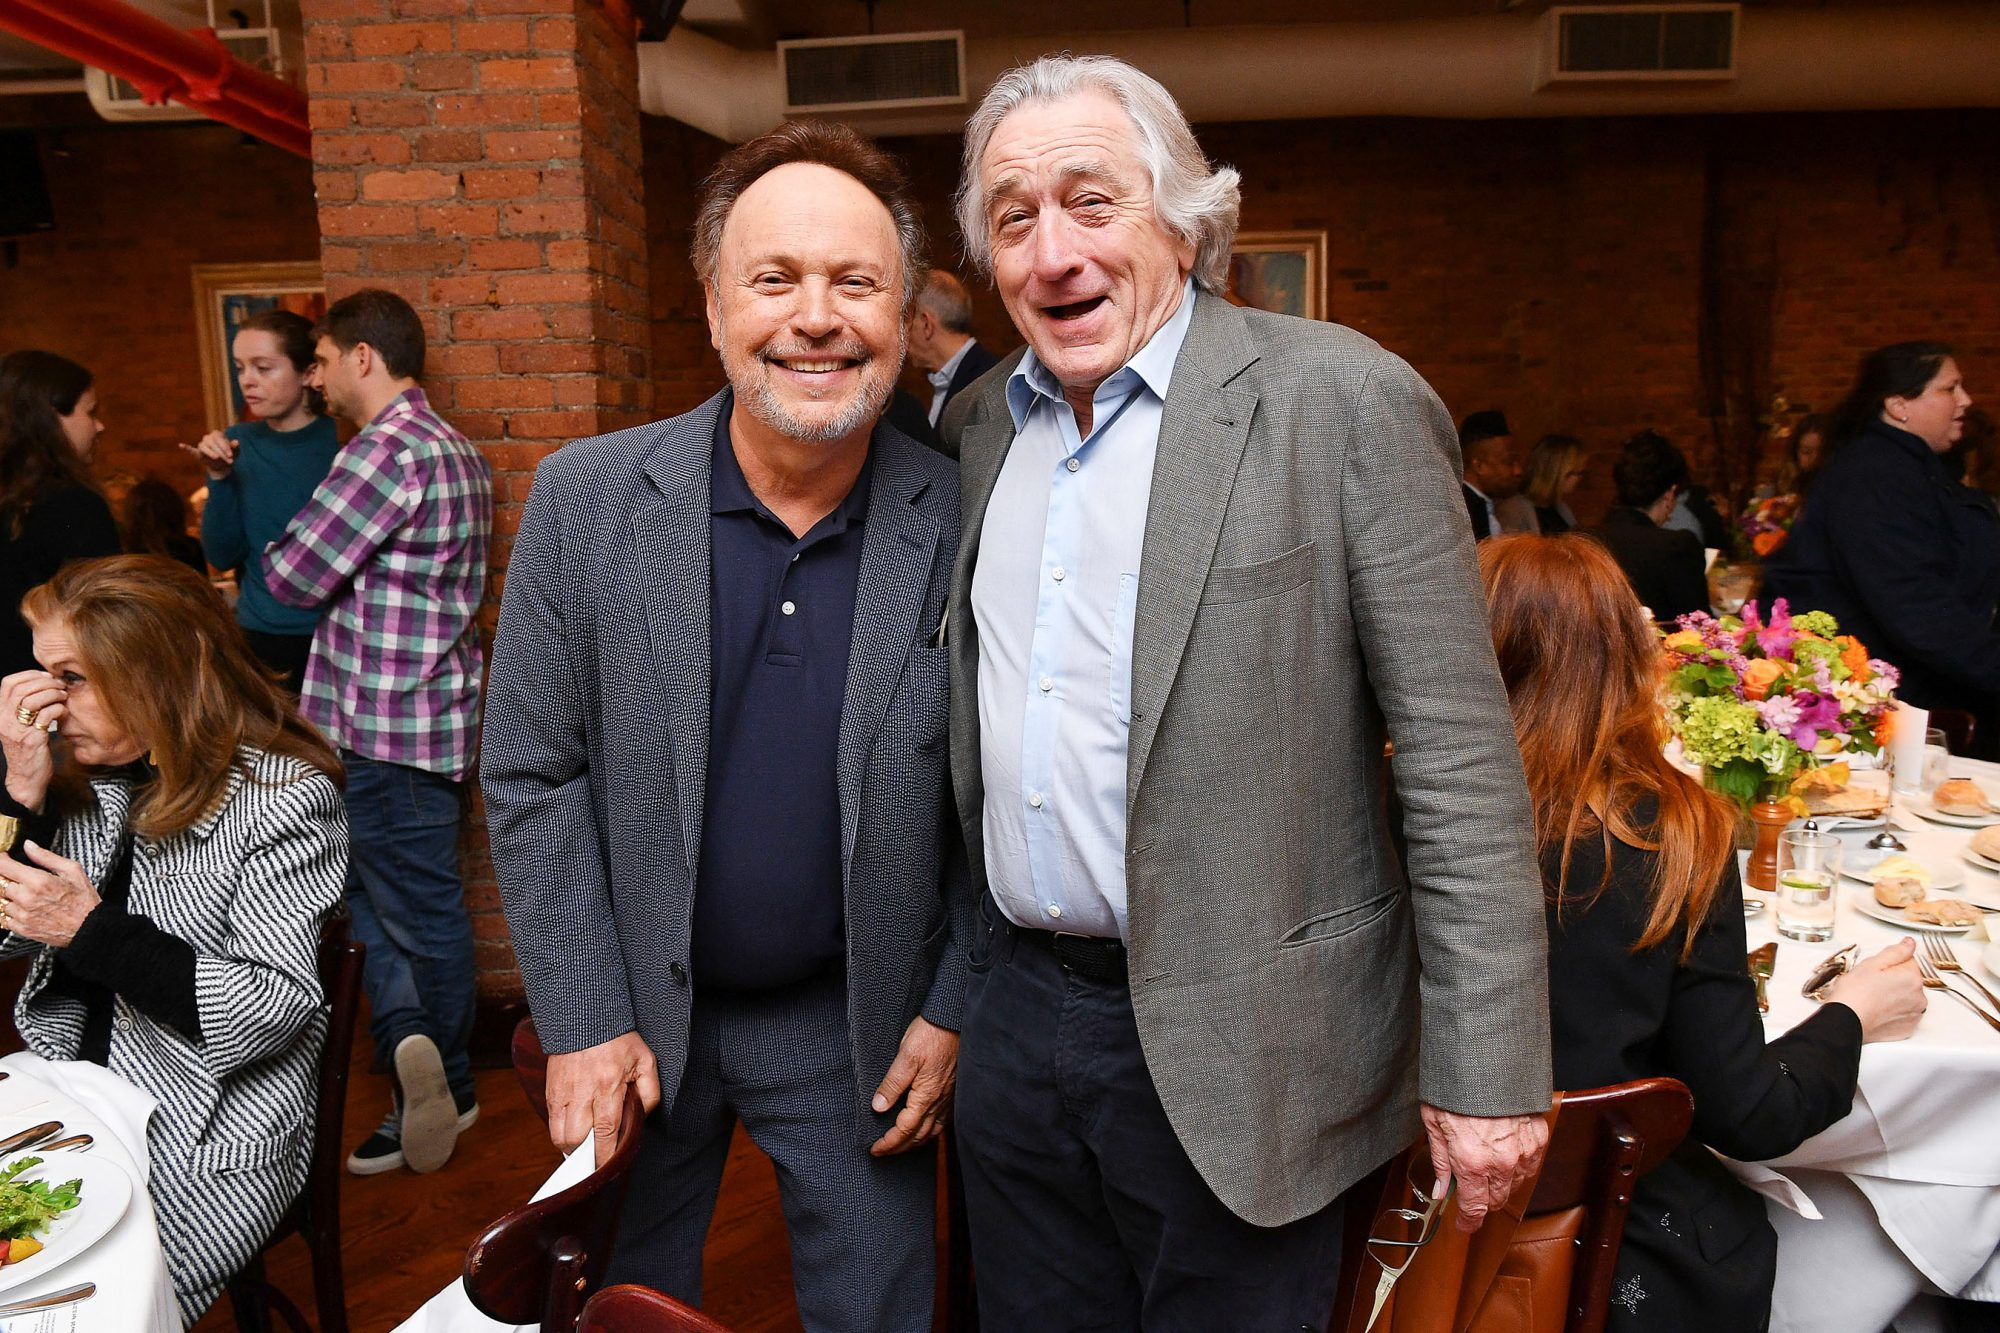 Billy Crystal and Robert De Niro